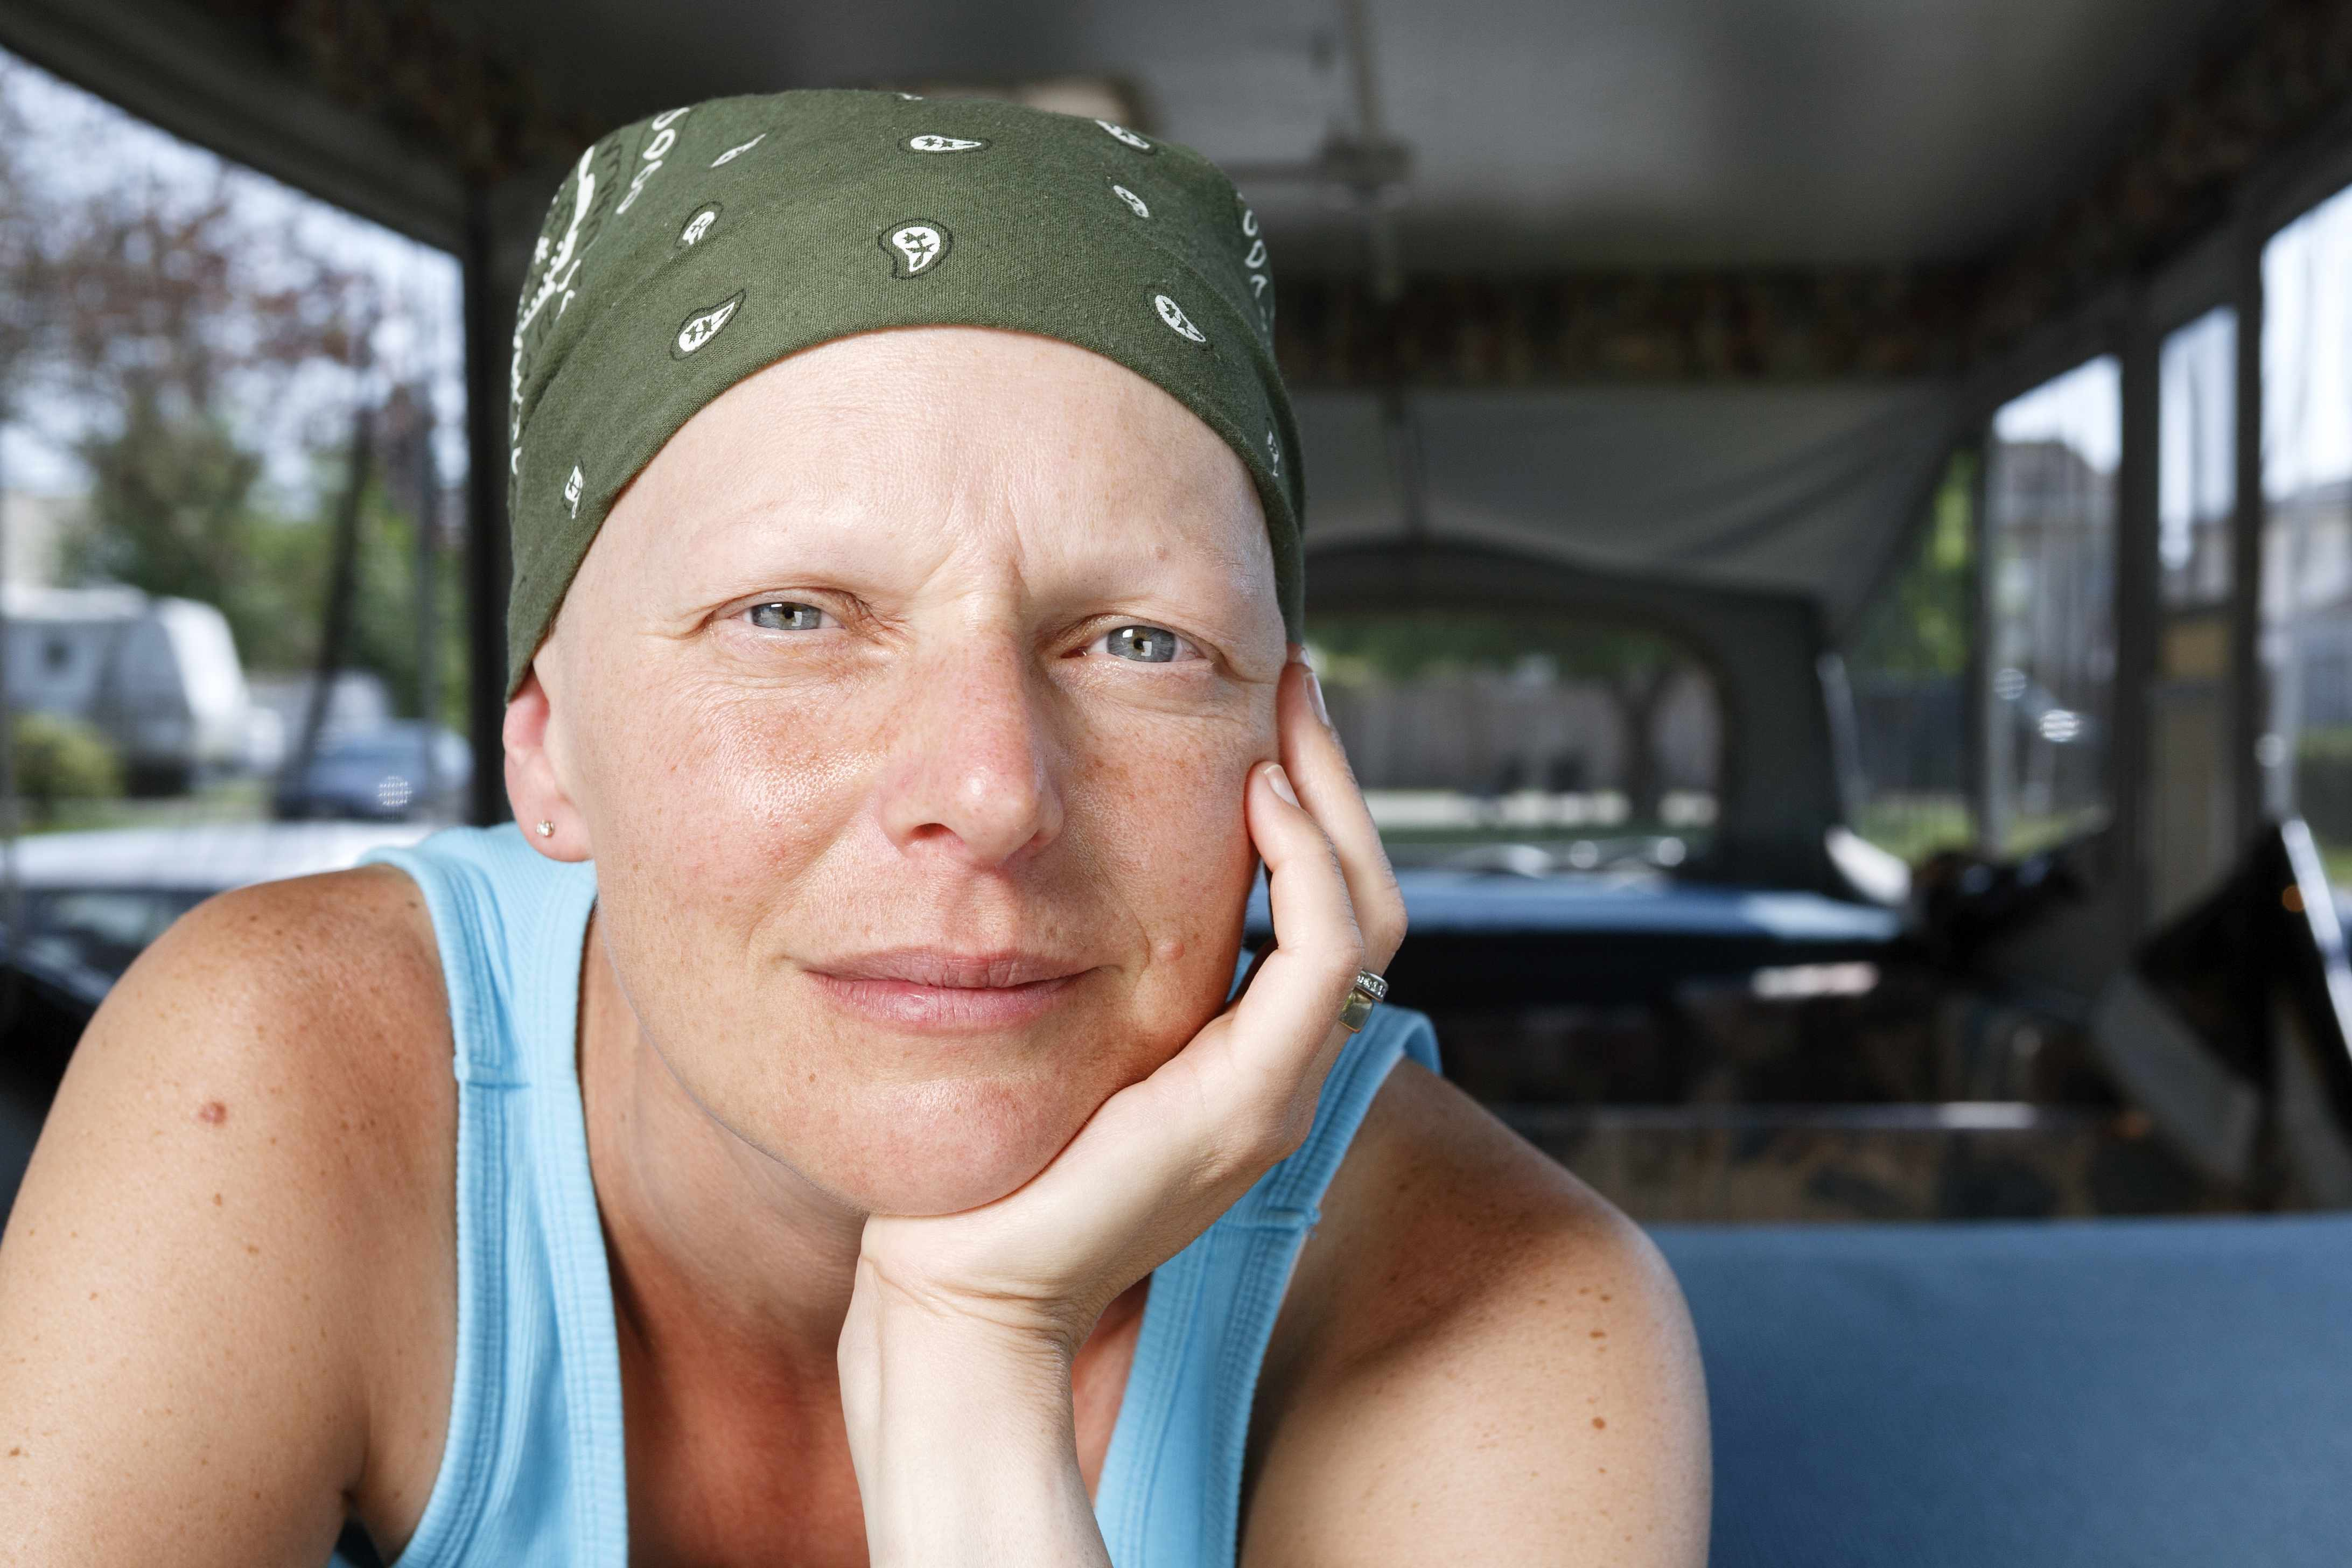 a woman with a headscarf, perhaps due to chemo therapy treatment for cancer, looking pensively into the camera